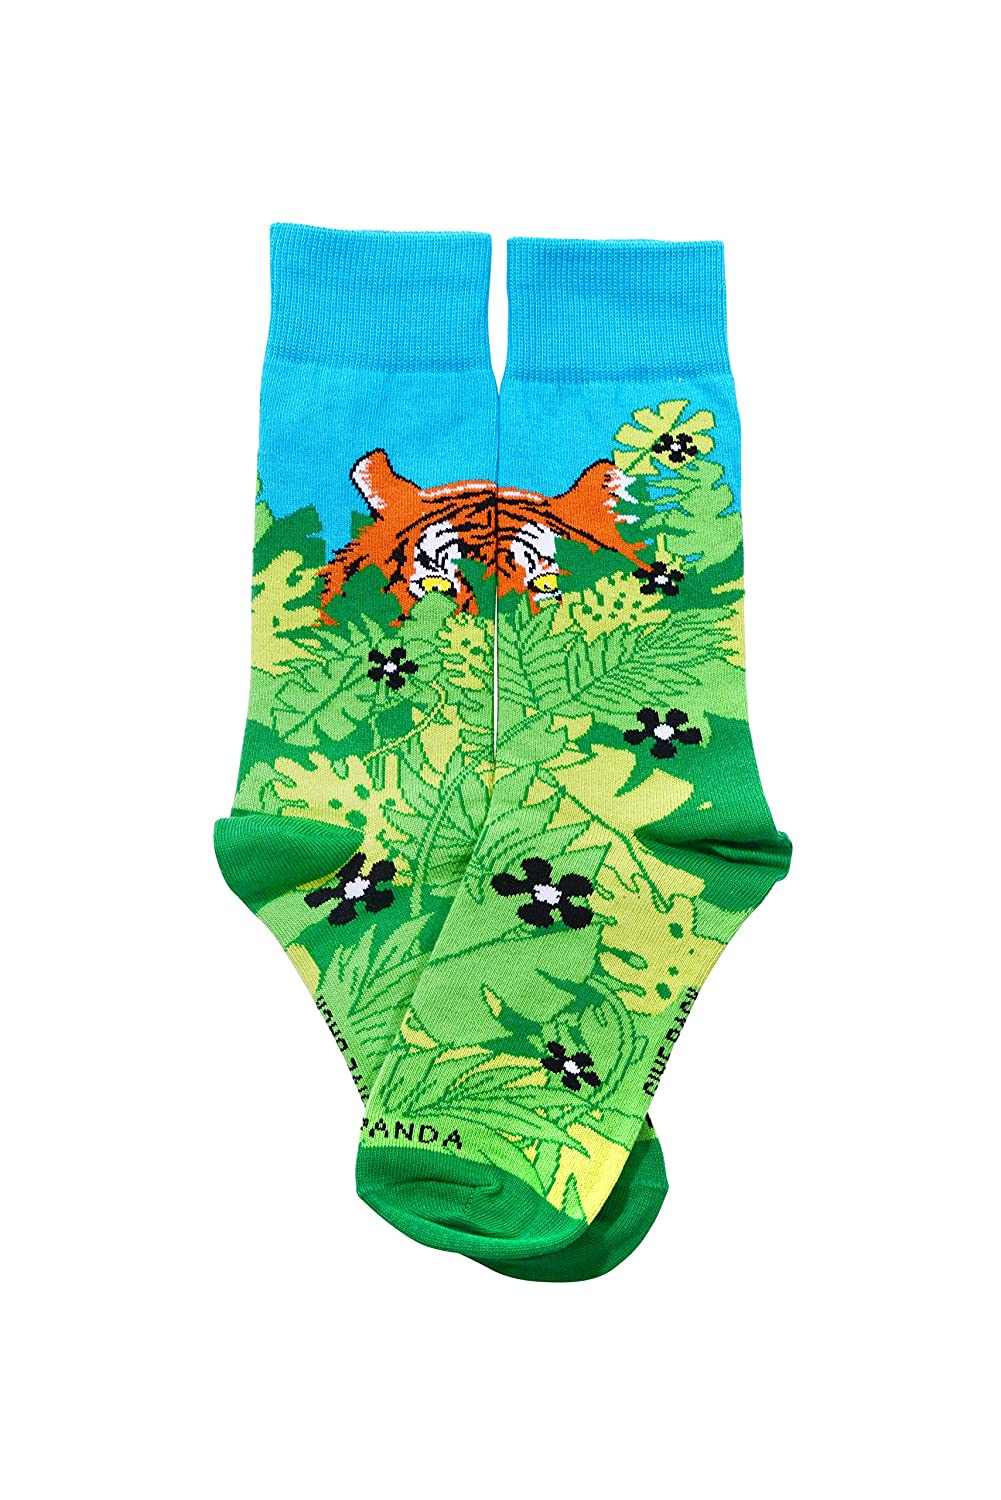 Hidden Tiger Tween Sized Socks from the Sock Panda